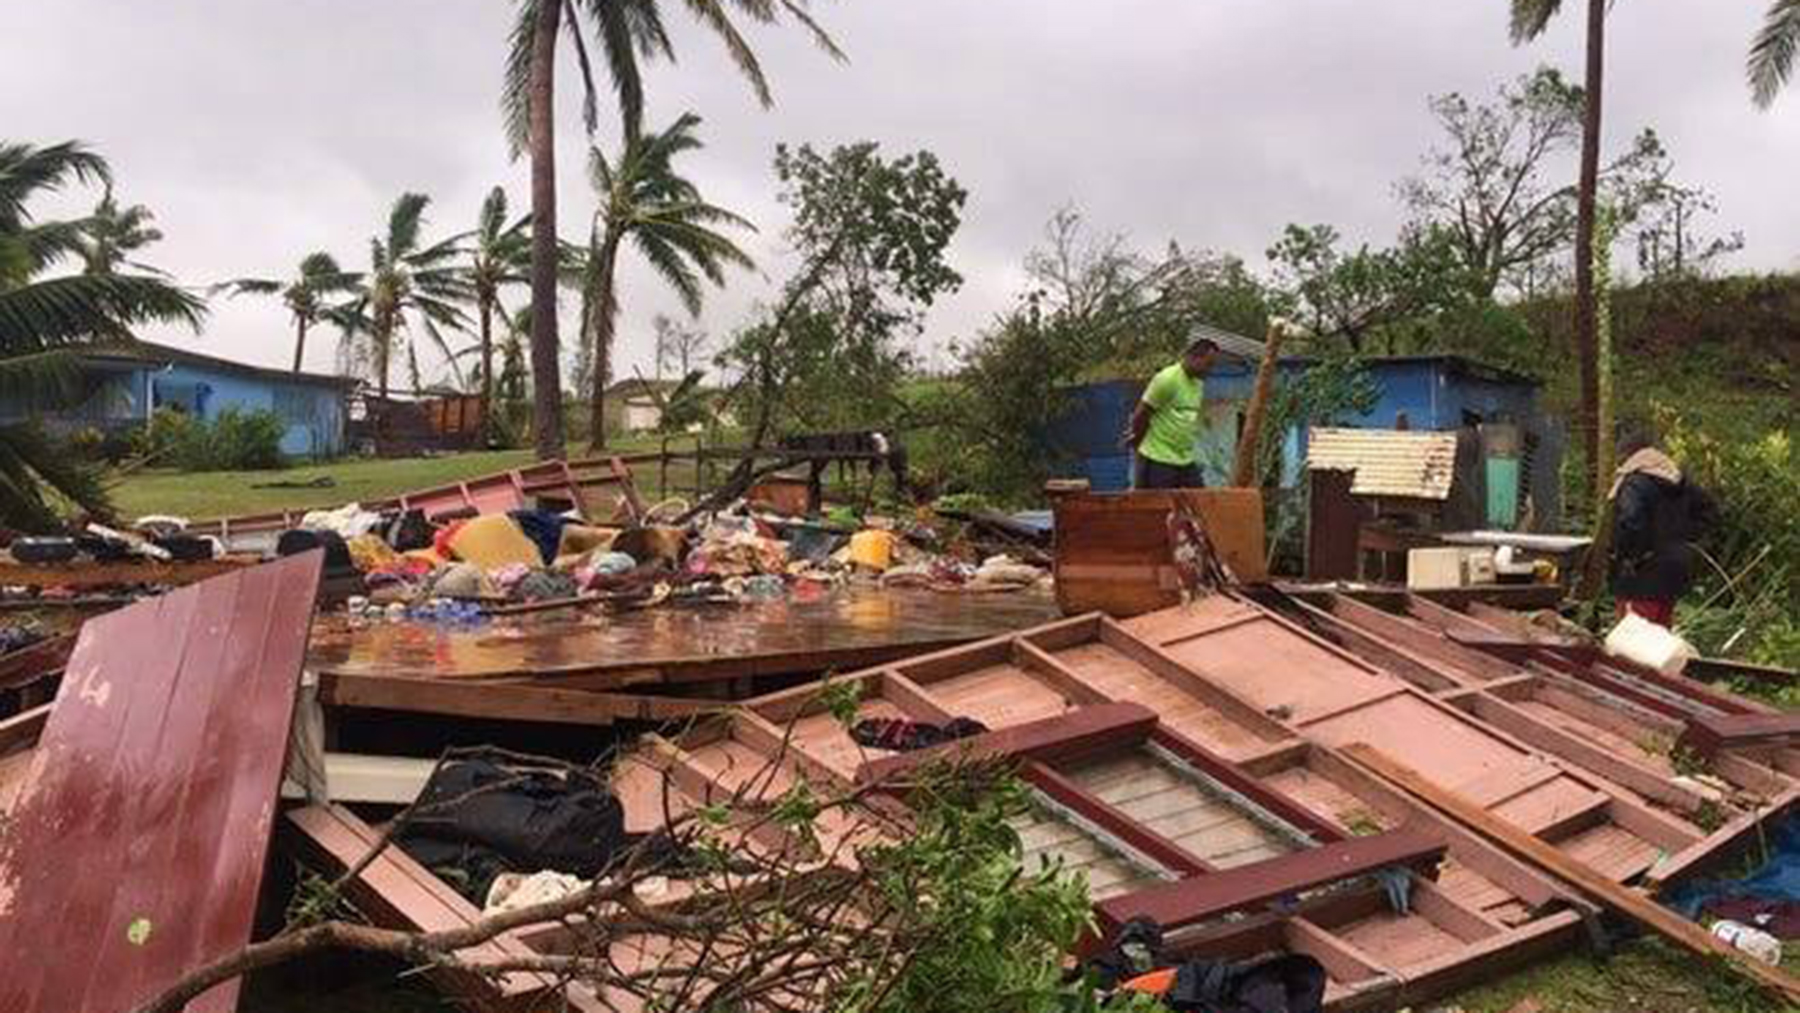 Destruction in the wake of Cyclone Yasa. (Photo courtesy of the Loloma Foundation)